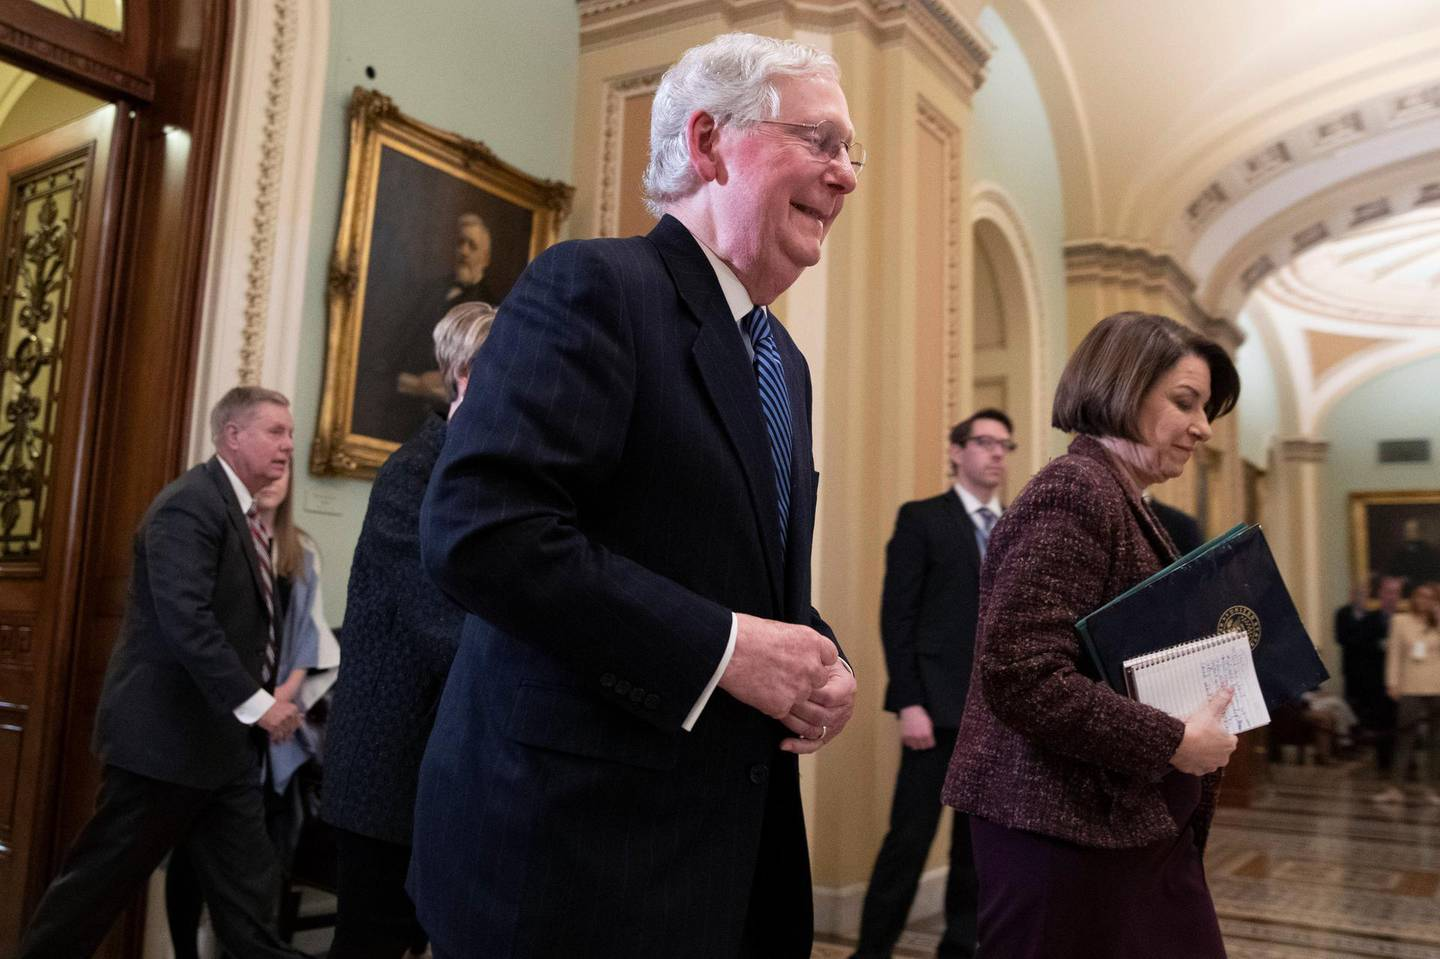 Senate Majority Leader Mitch McConnell, R-KY., walks out of the Senate chamber with Sen. Amy Klobuchar, D-Minn., during a break in the impeachment trial of President Donald Trump at the Capitol, Wednesday, Jan. 22, 2020, in Washington. (AP Photo/Steve Helber)